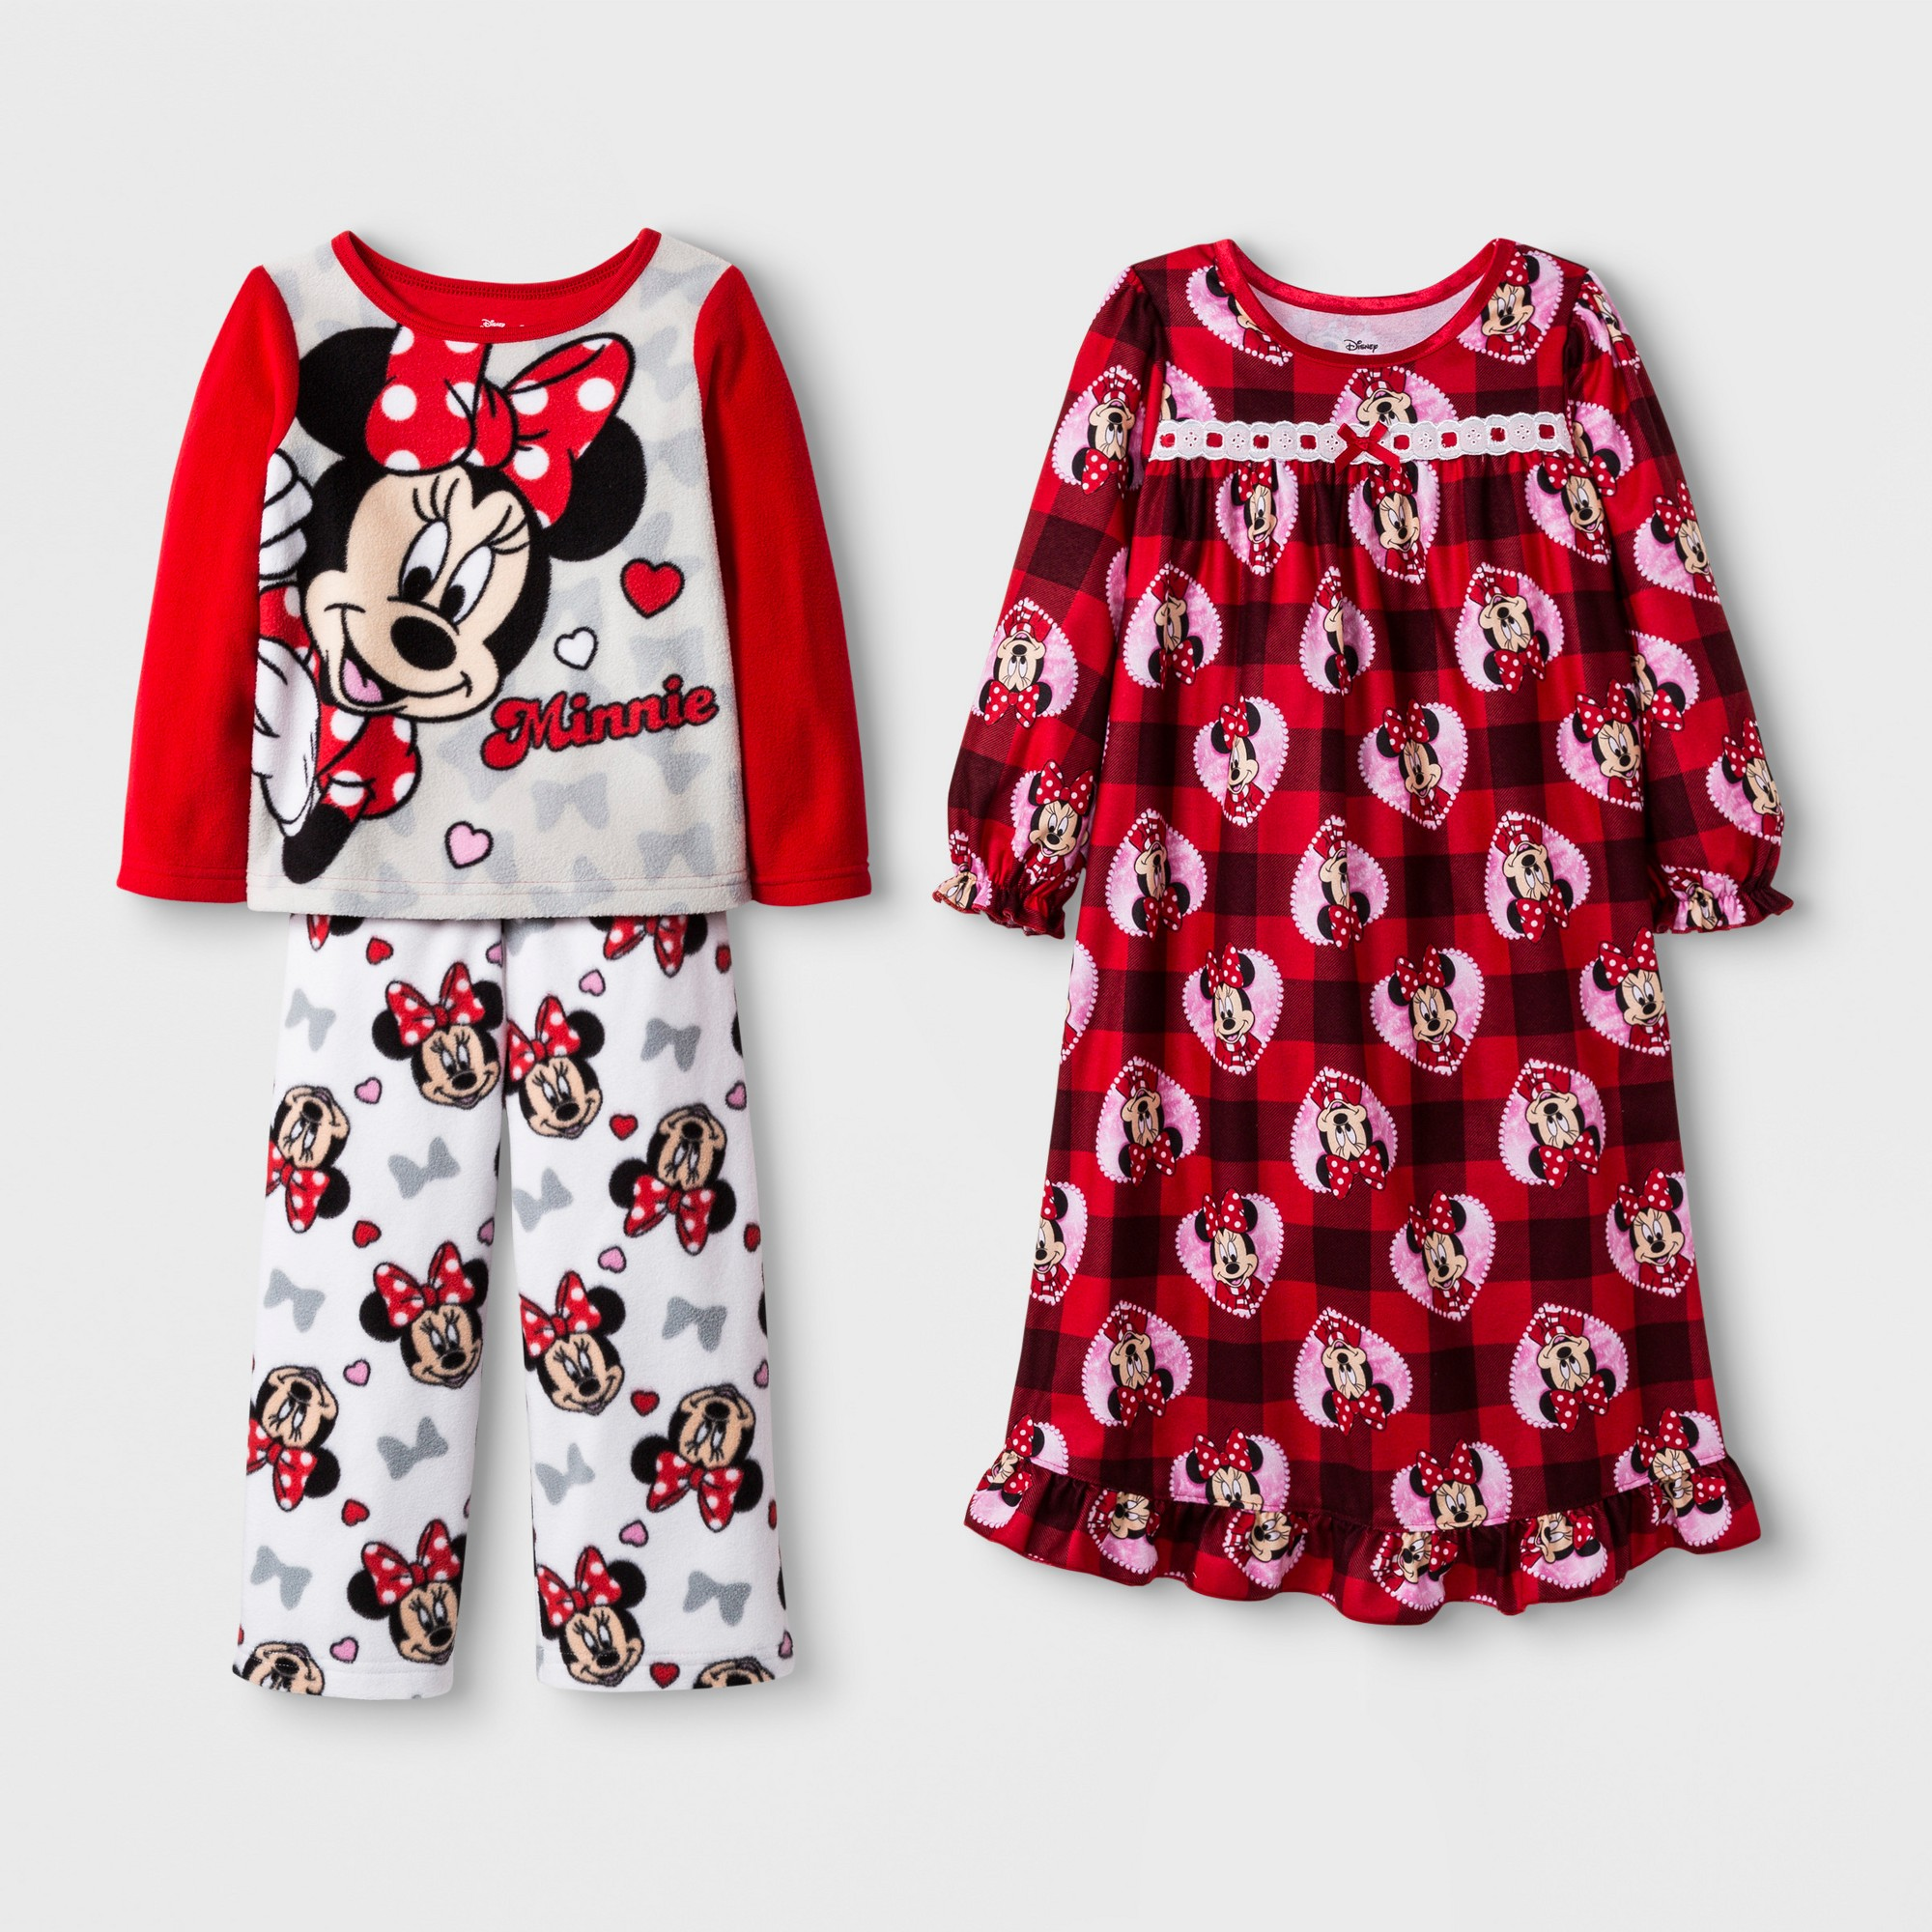 Toddler Girls  Minnie Mouse 3pc Pajama Set - Red 2T  76ed6b0dd